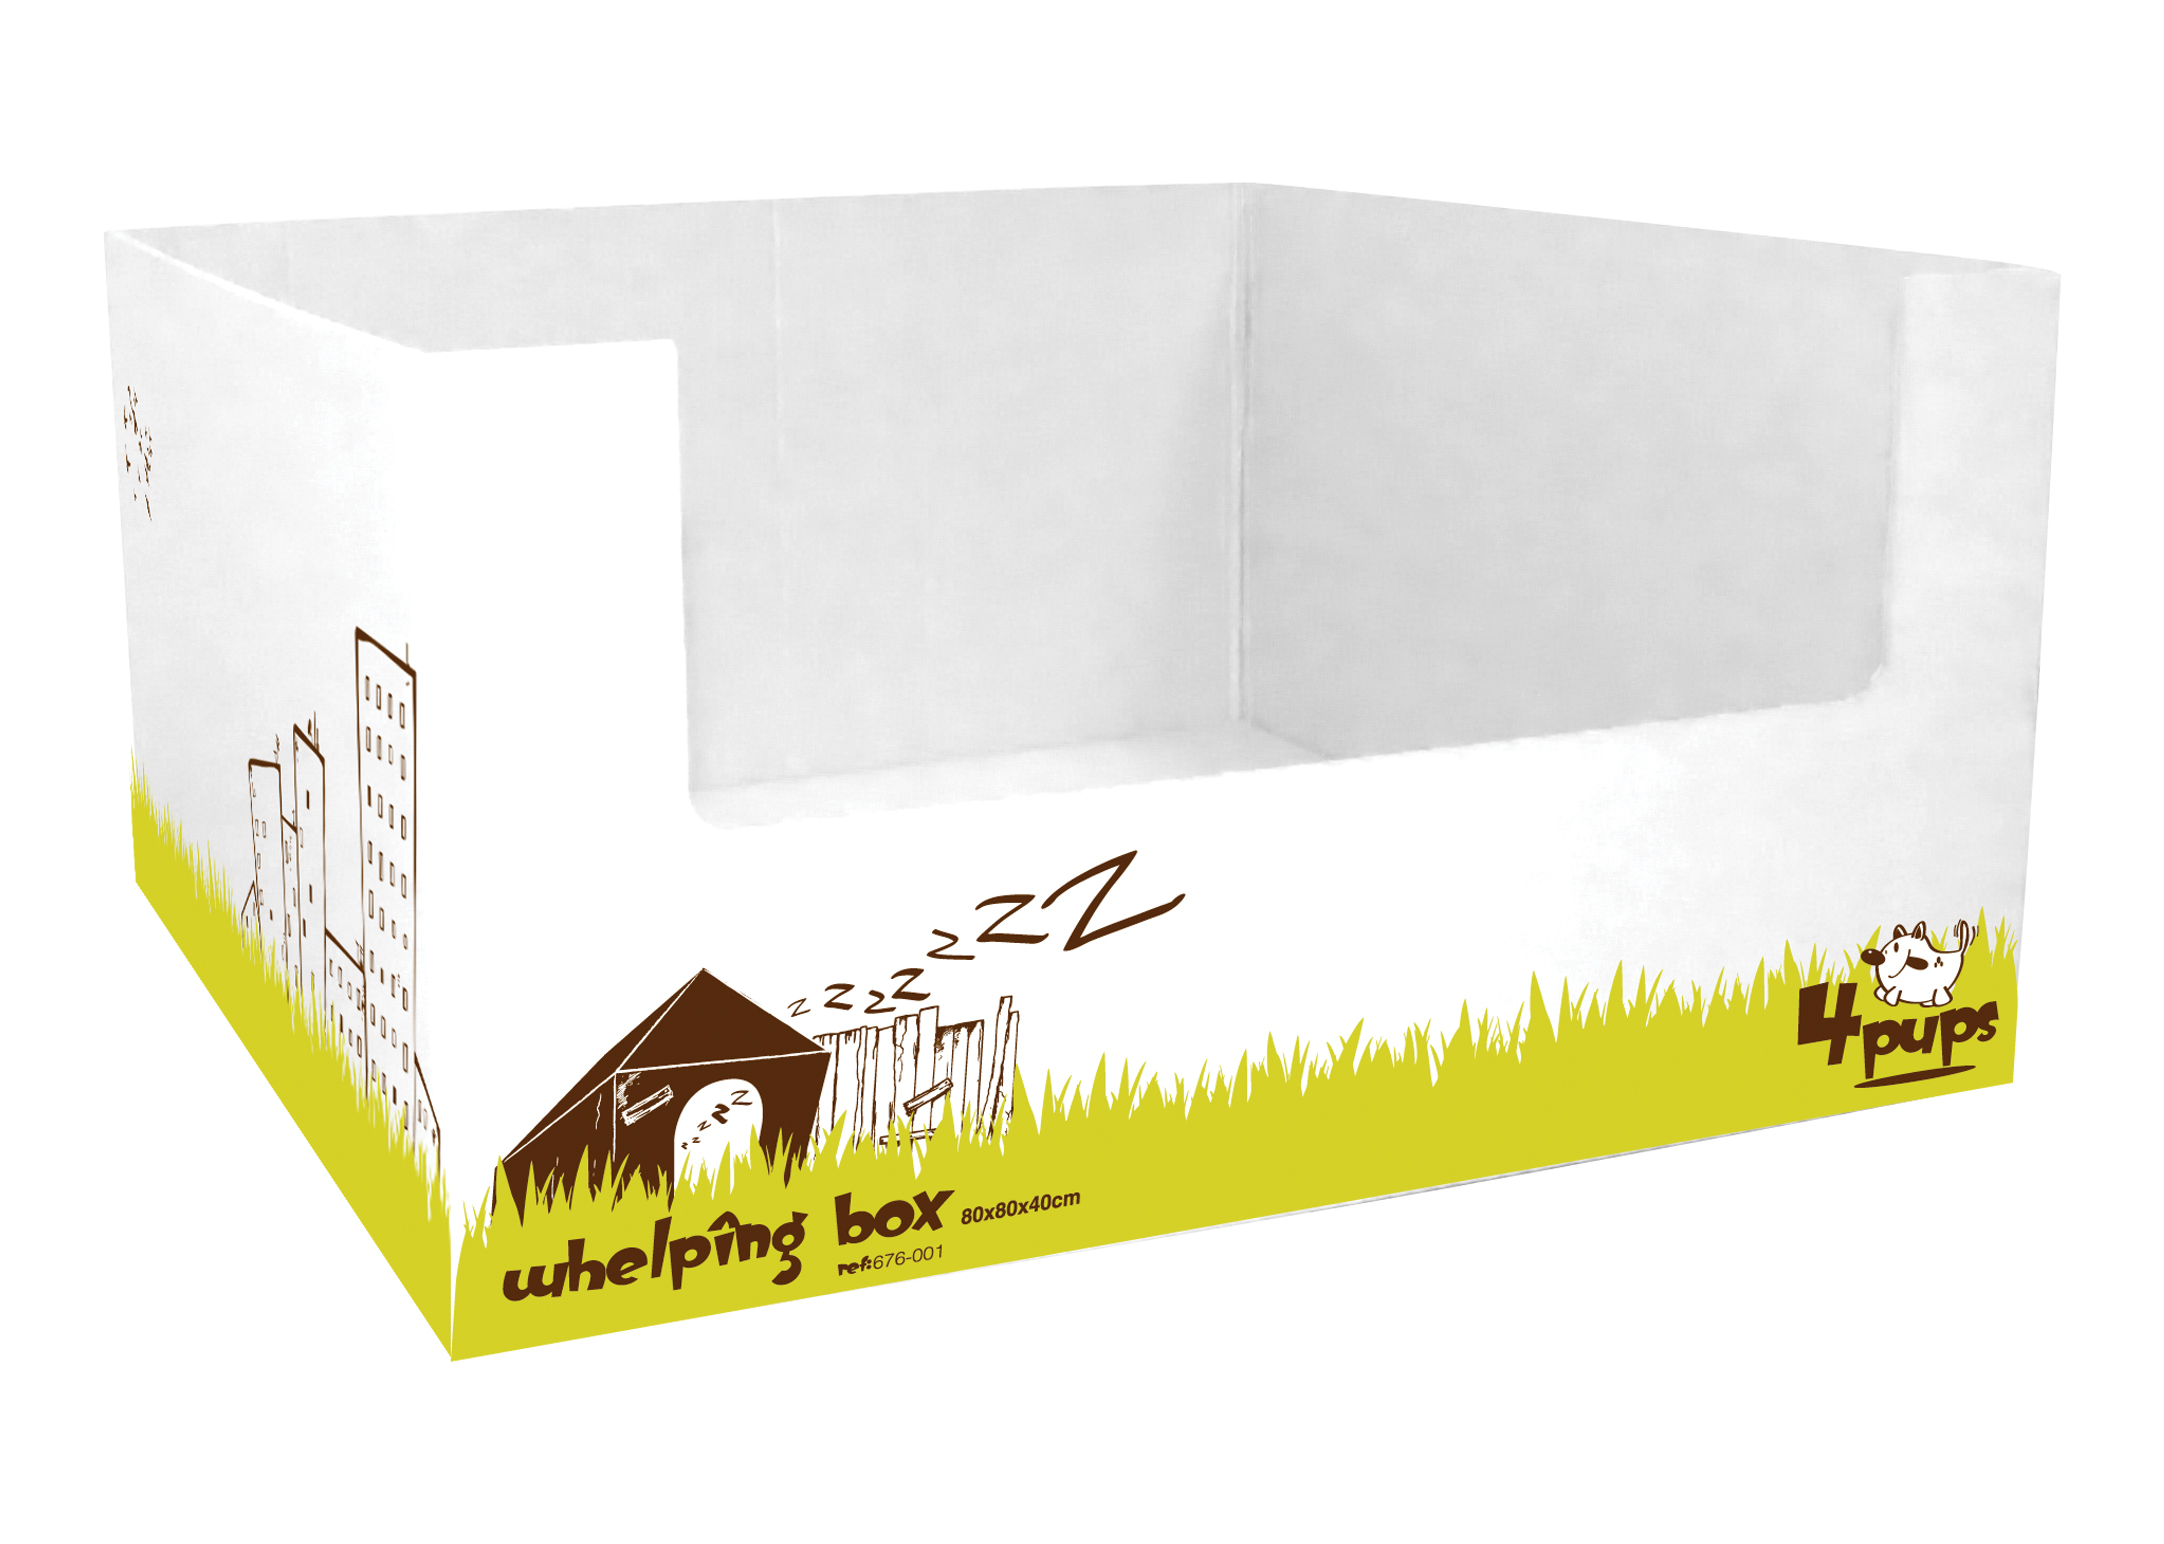 4Pups Whelping Box 80x80x40cm